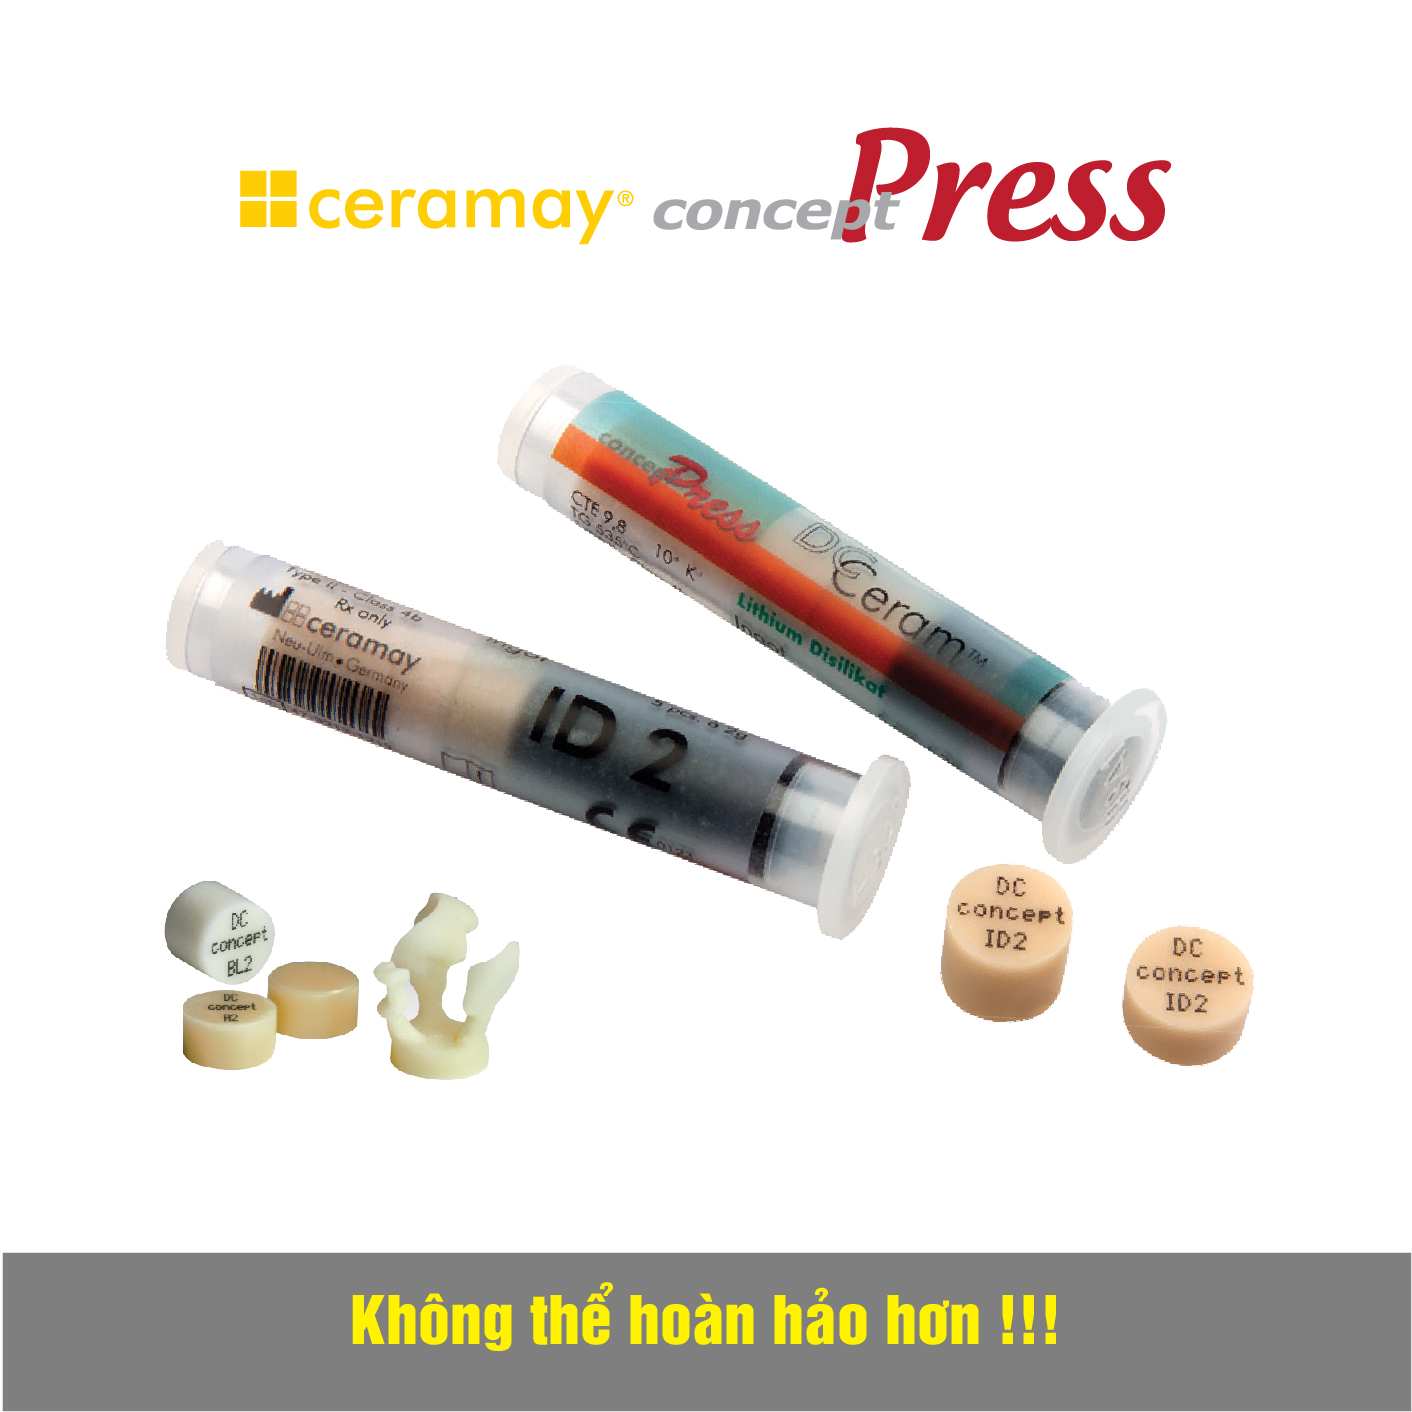 Ceramay Concept Press